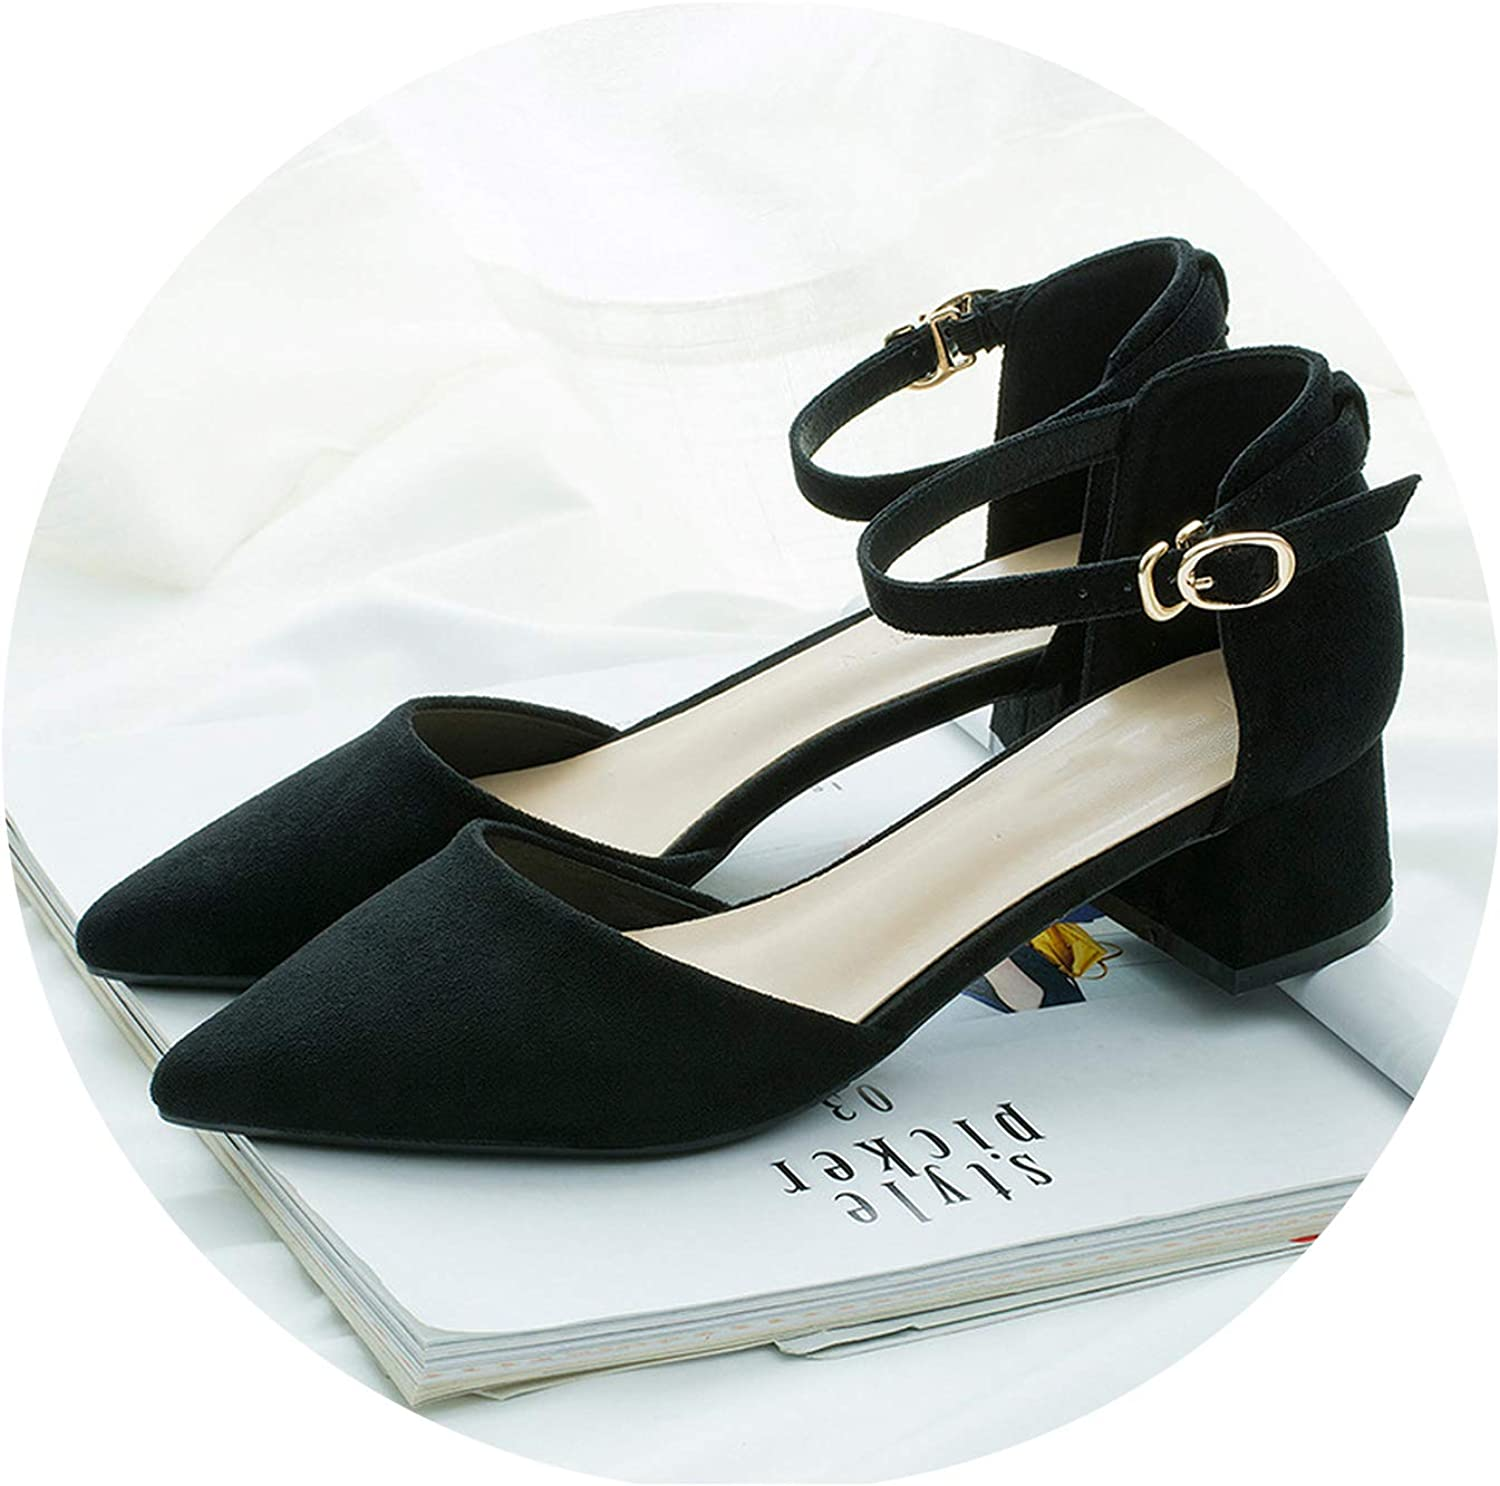 Word Buckle Hollow Suede Single shoes Thick with Pointed Toe High Heels Women